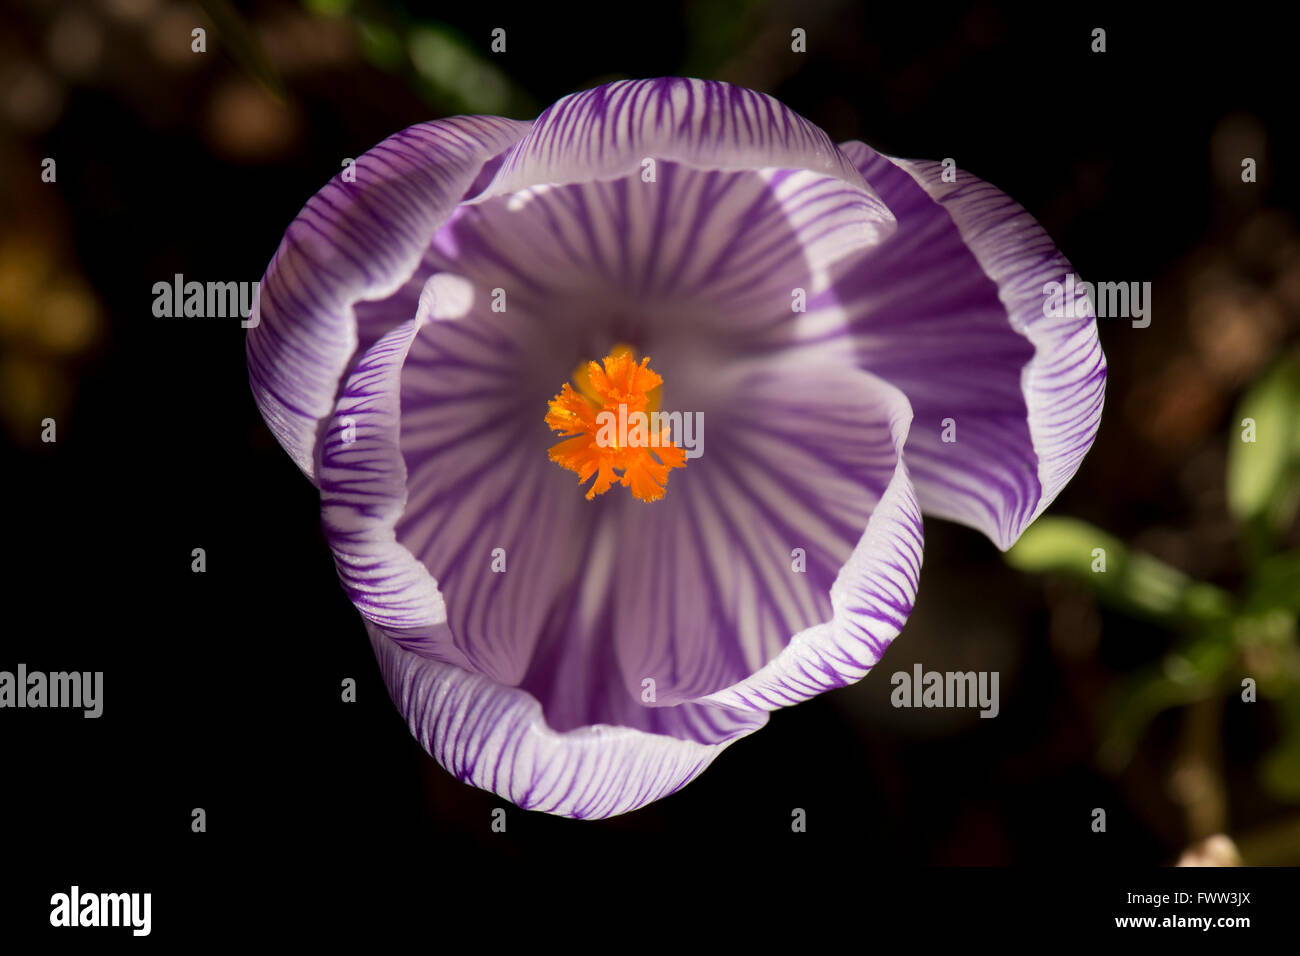 Flower of a purple and white crocus with bright orange anthers and stigmata, February - Stock Image